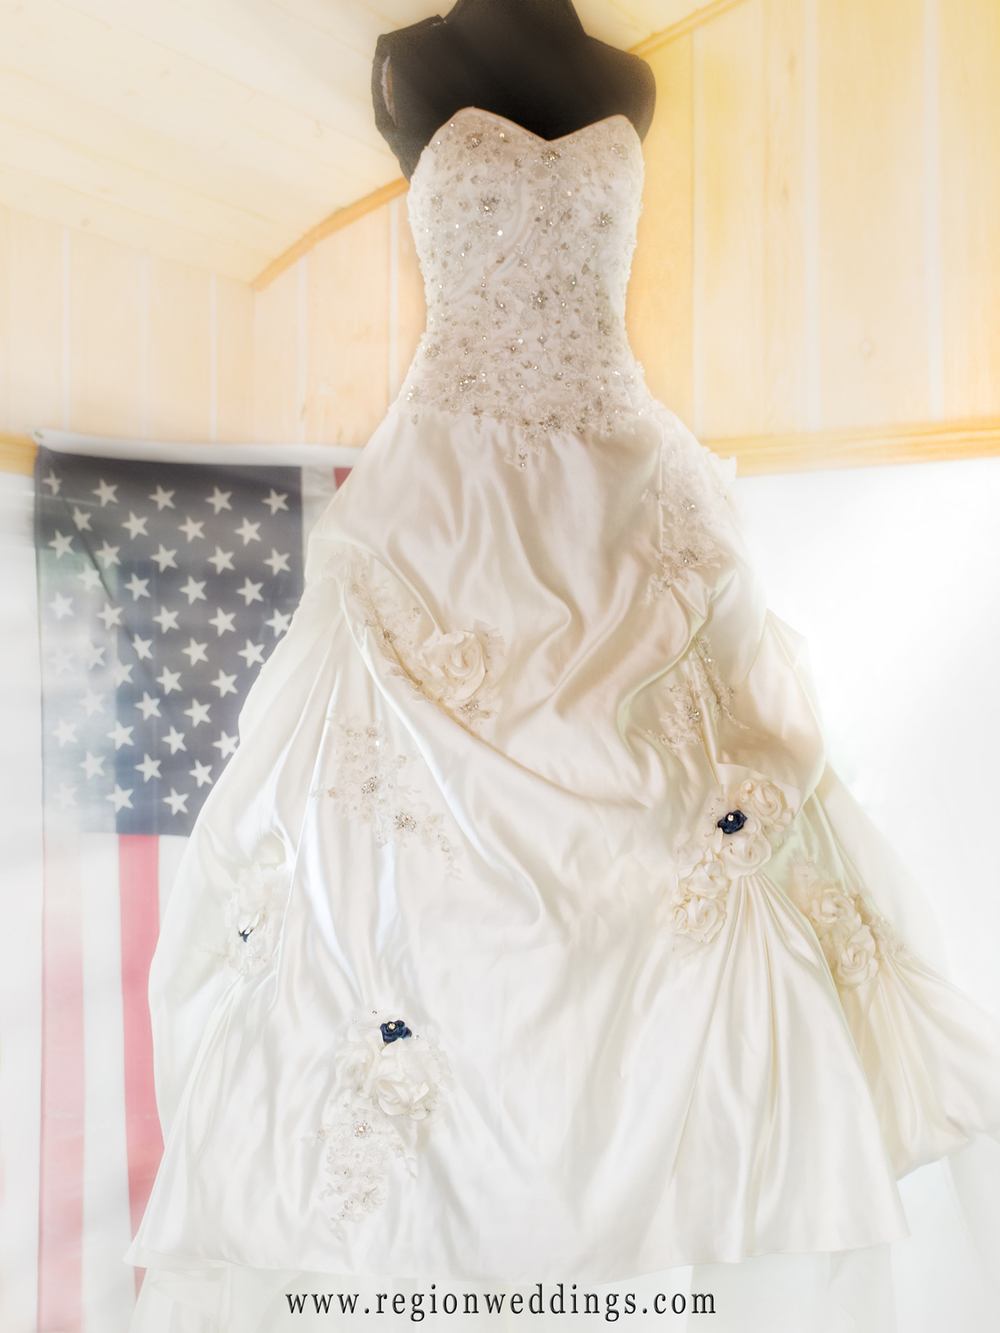 The american flag is seen in the background as the bride's dress hangs in waiting.